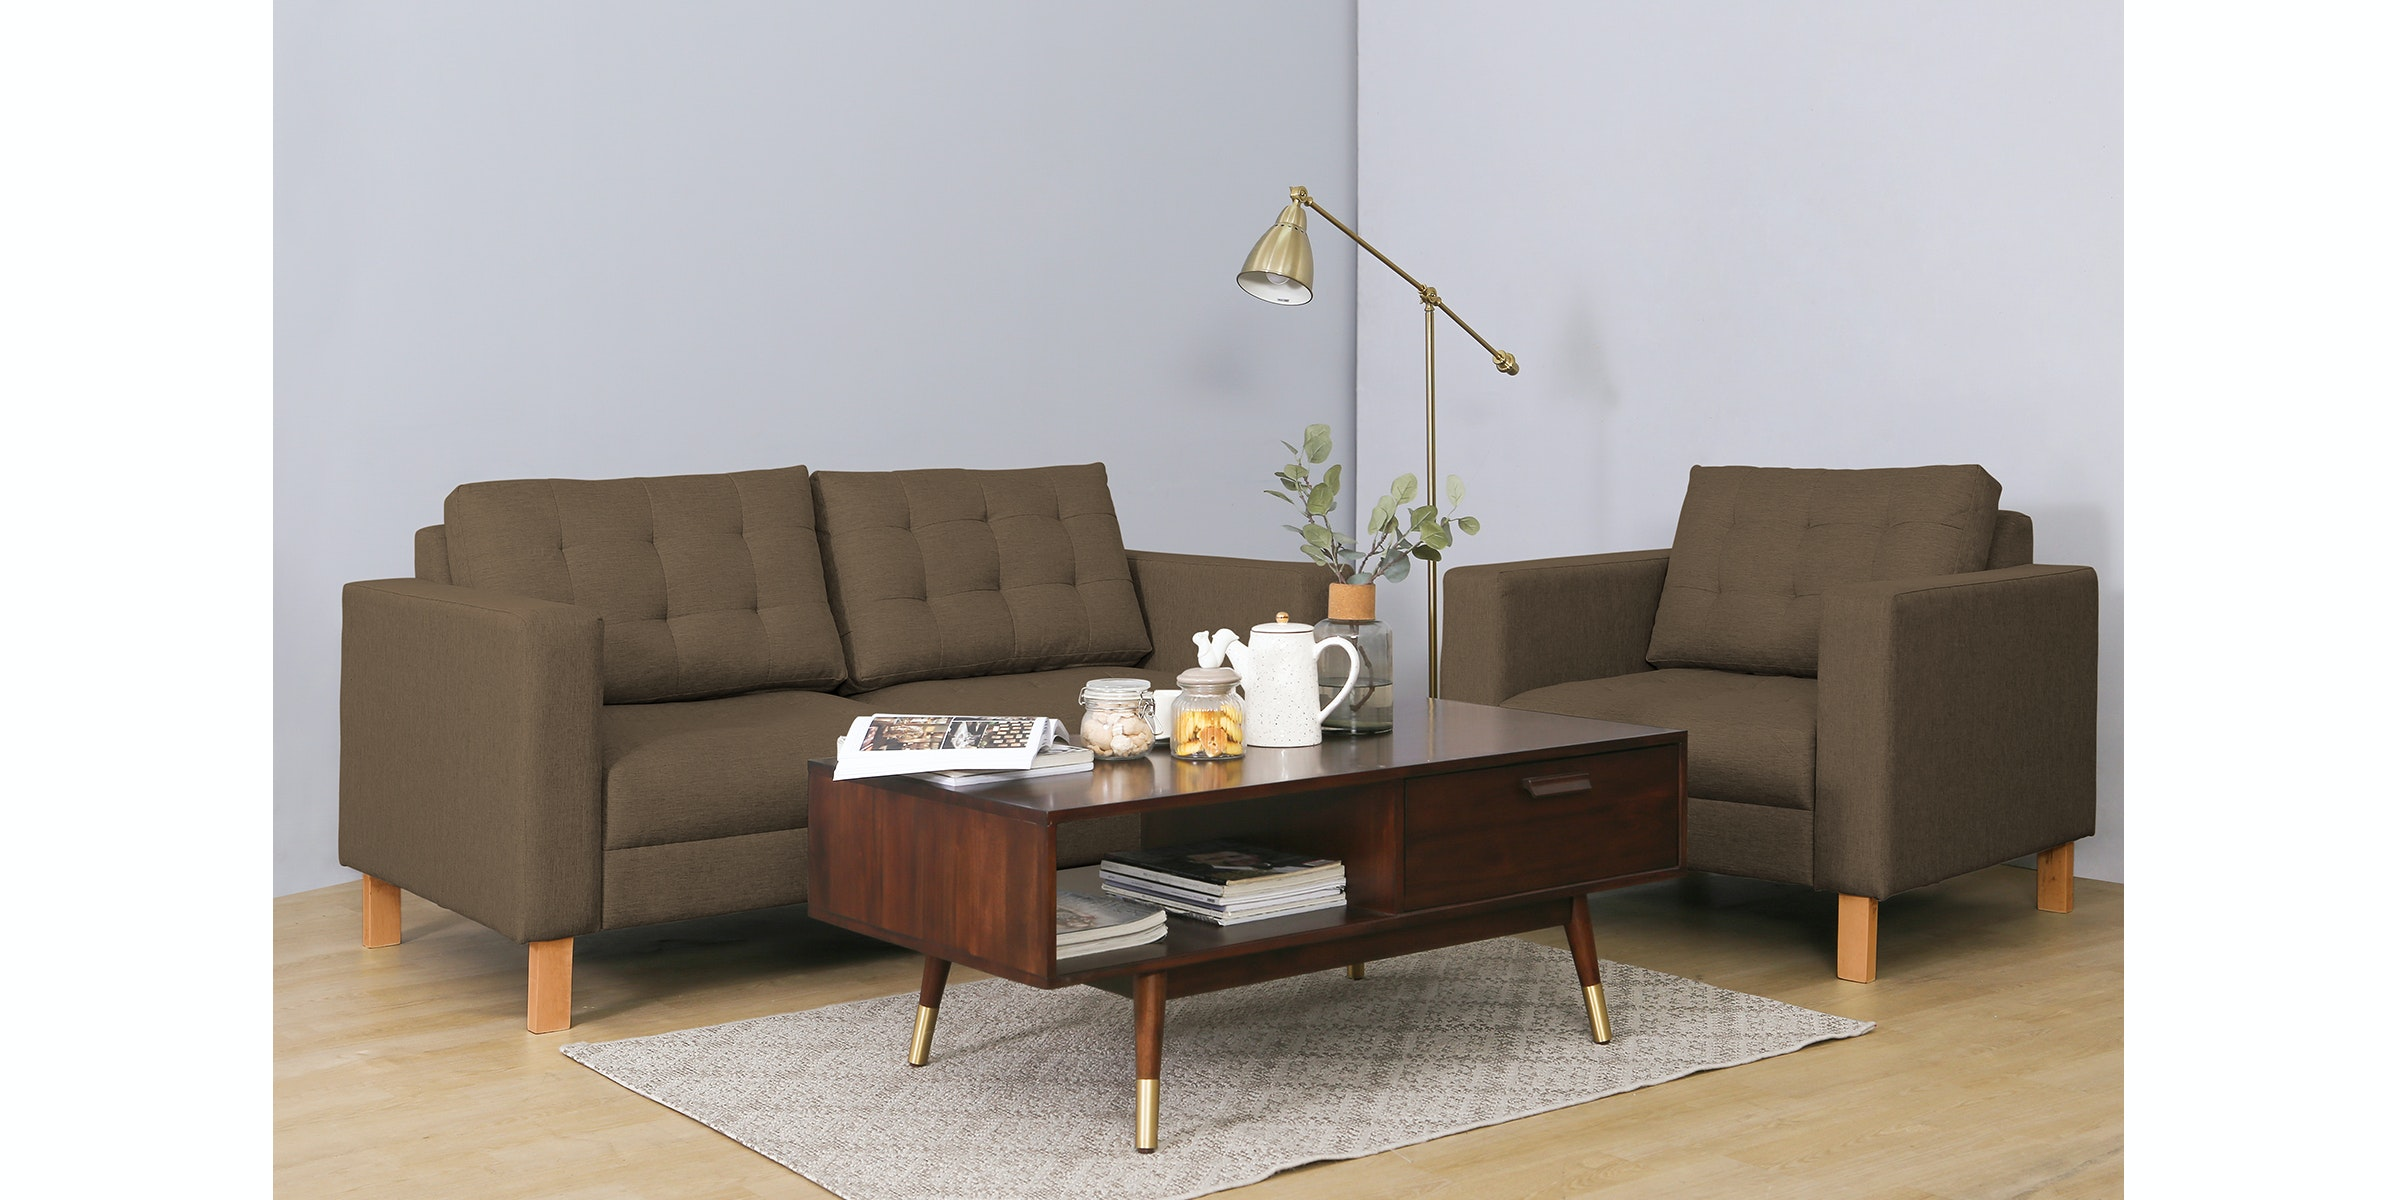 Maesta Felix Sofa Set Cokelat Wood